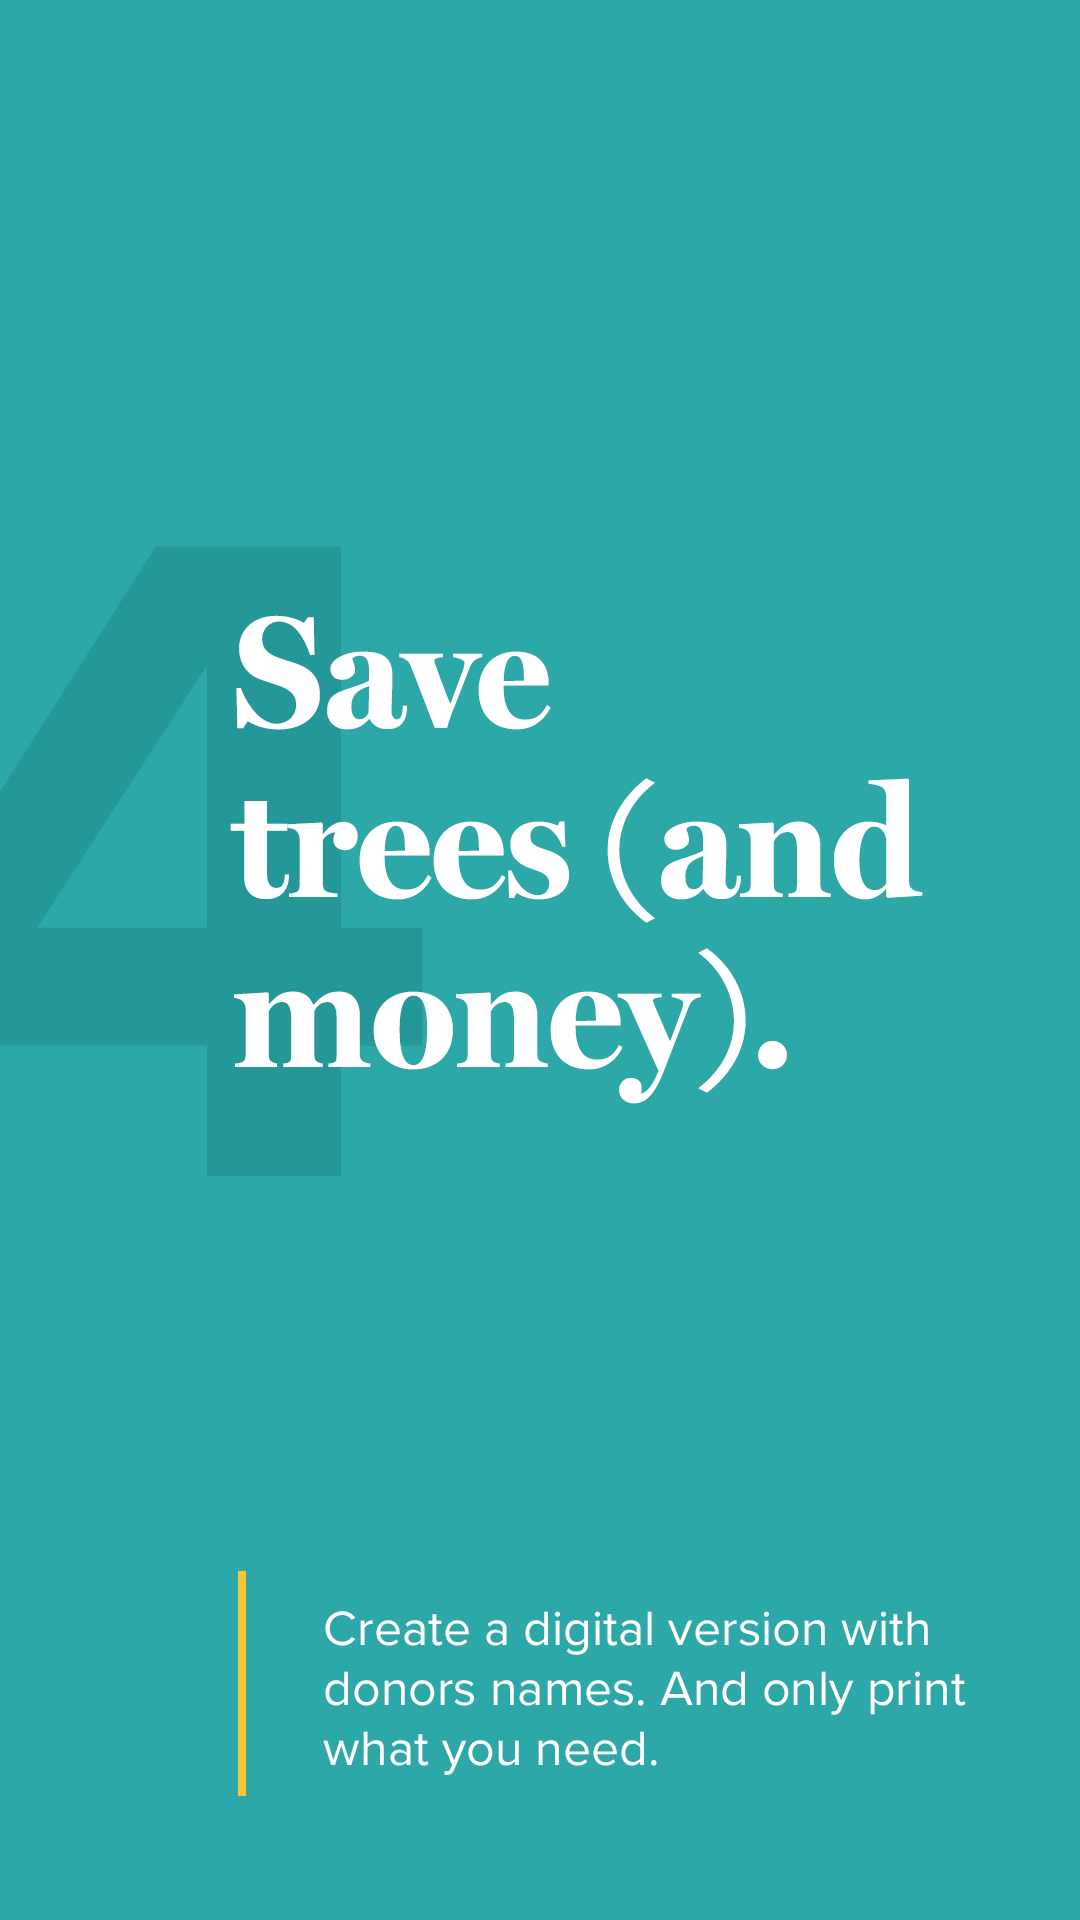 SaveTrees.png